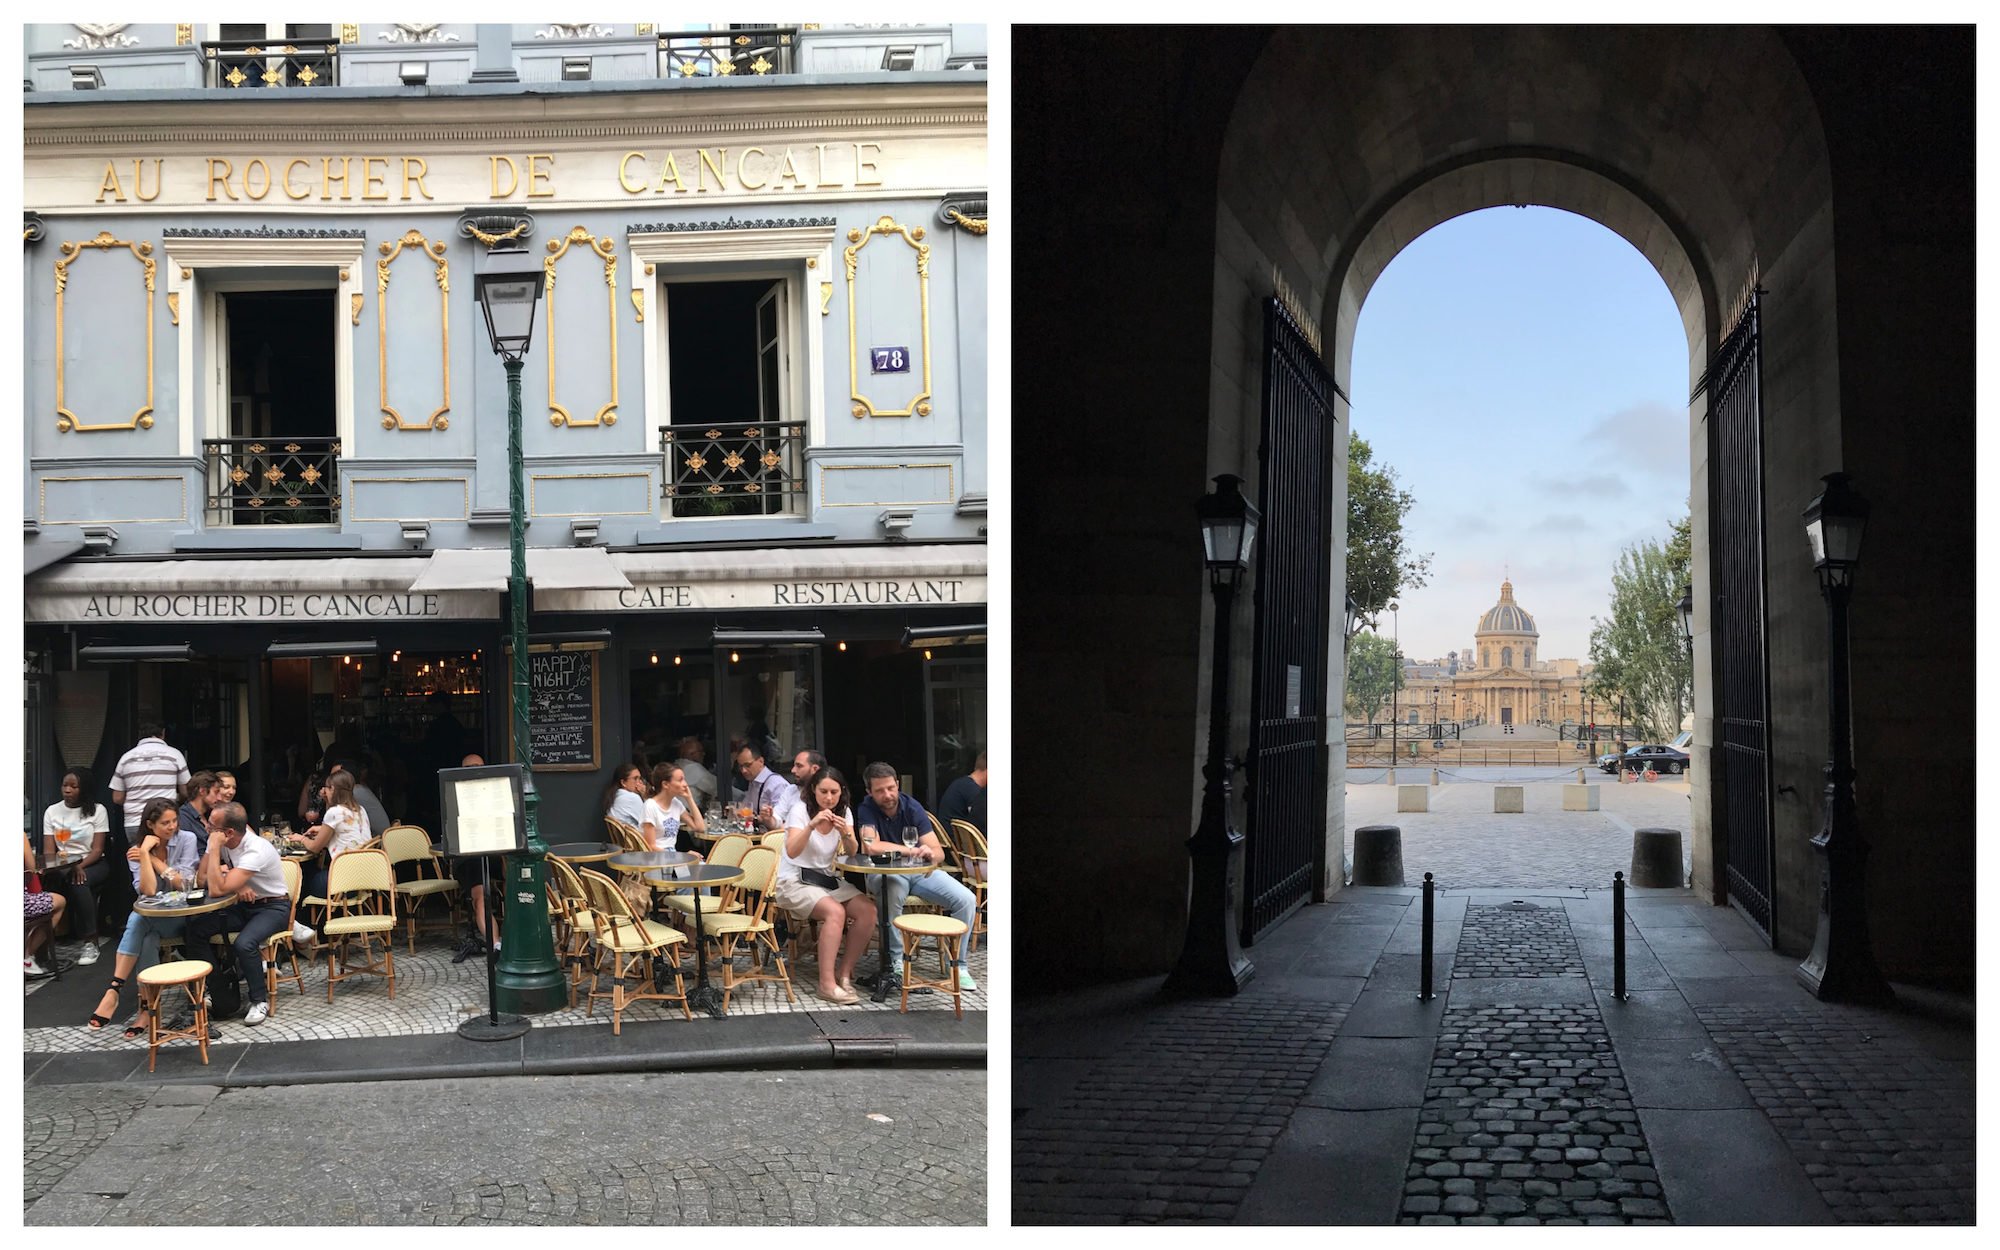 A HiP Paris go-to restaurant on rue Montorgueil is Au Rocher de Cancale for its old world interior and sunny terrace (left). We also can't get enough of the Paris' hidden architecture (right).